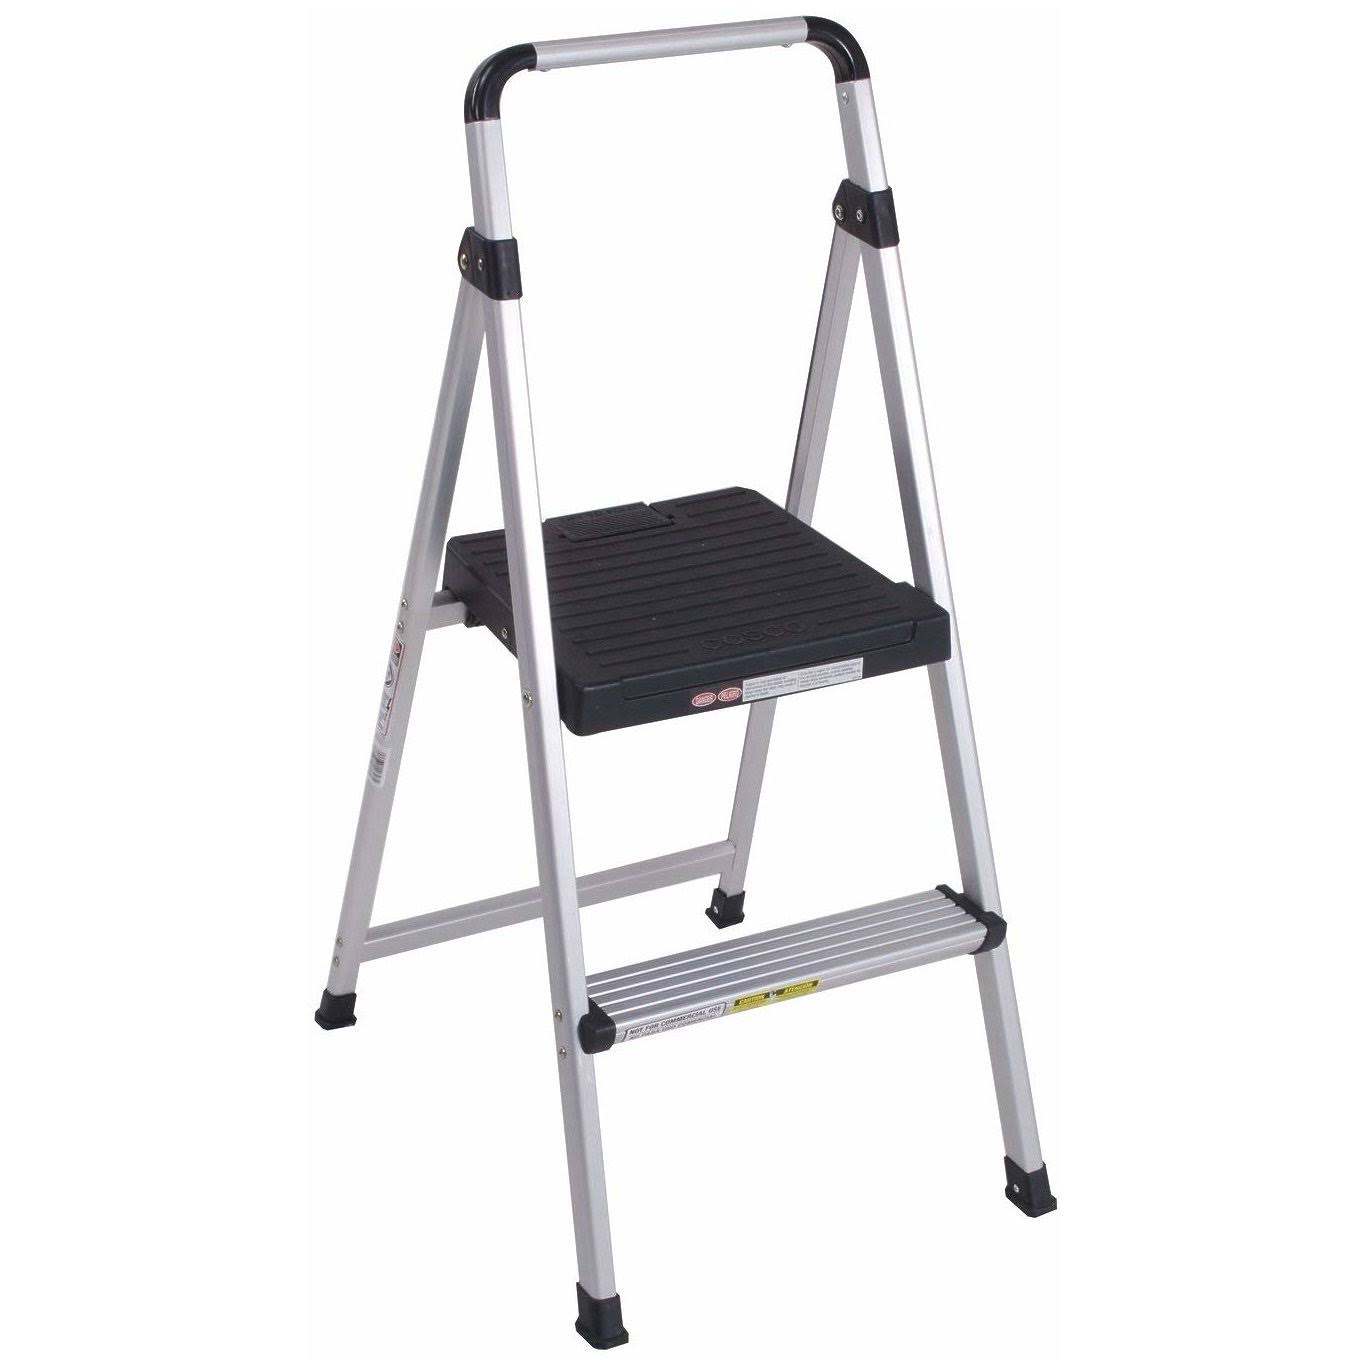 Cosco 11-628ABK4 Lite Solutions Aluminum Frame Step Ladder - Gray, 2 Step